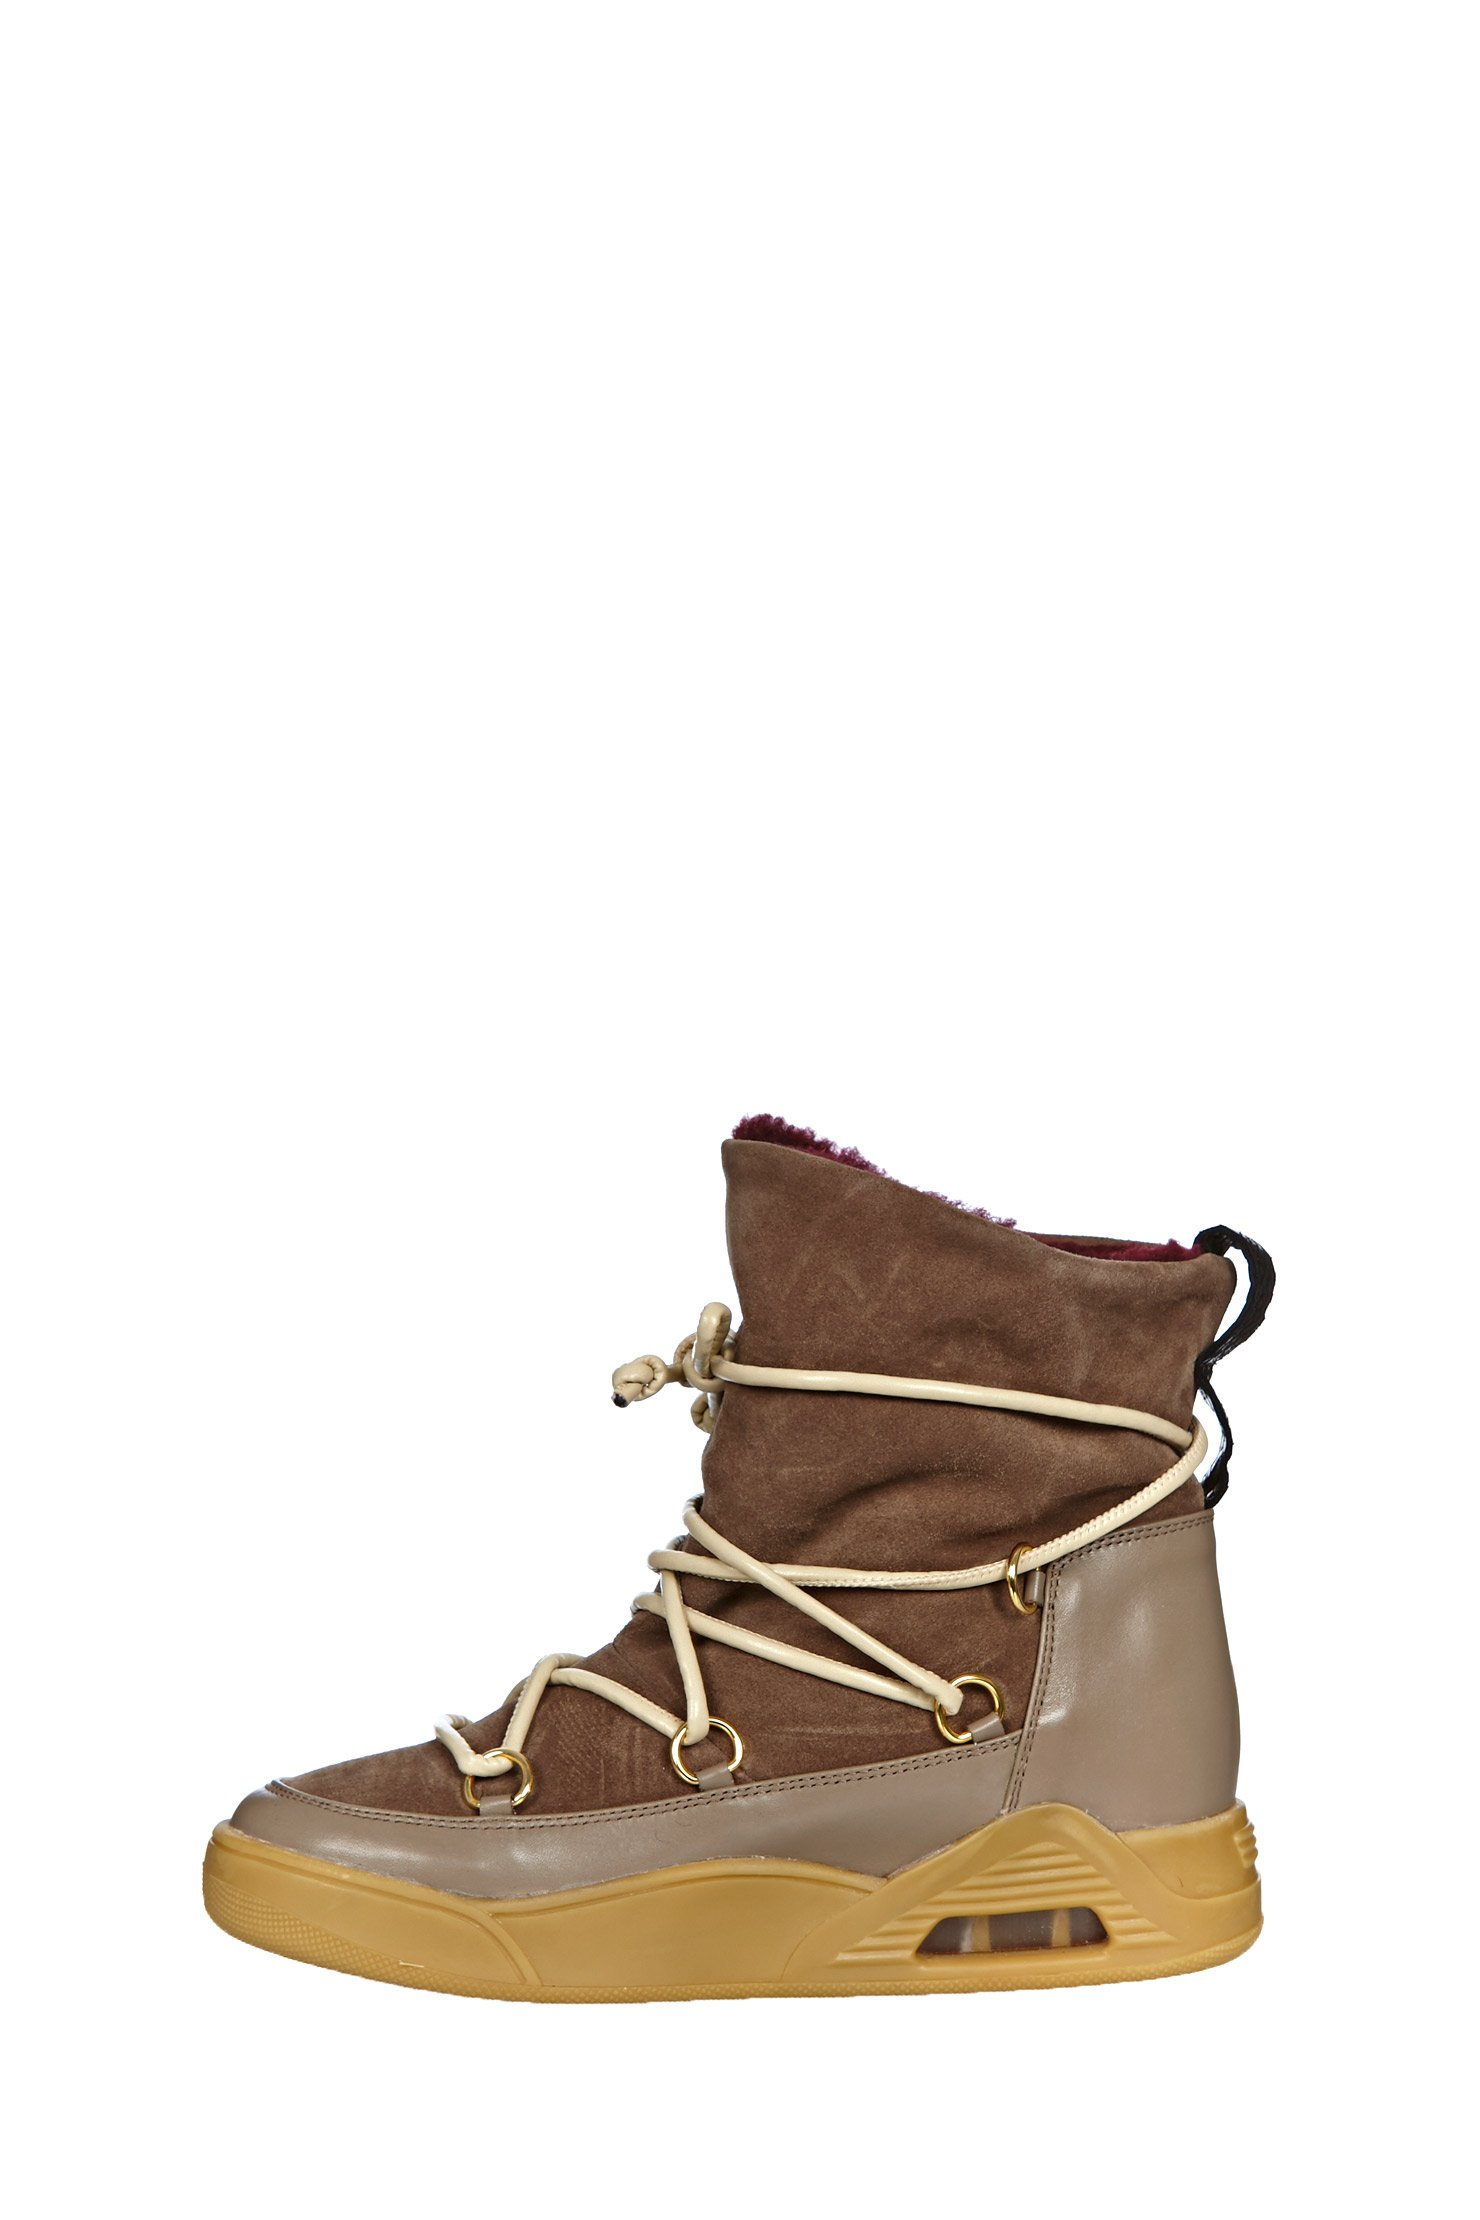 serafini boots moon in brown lyst